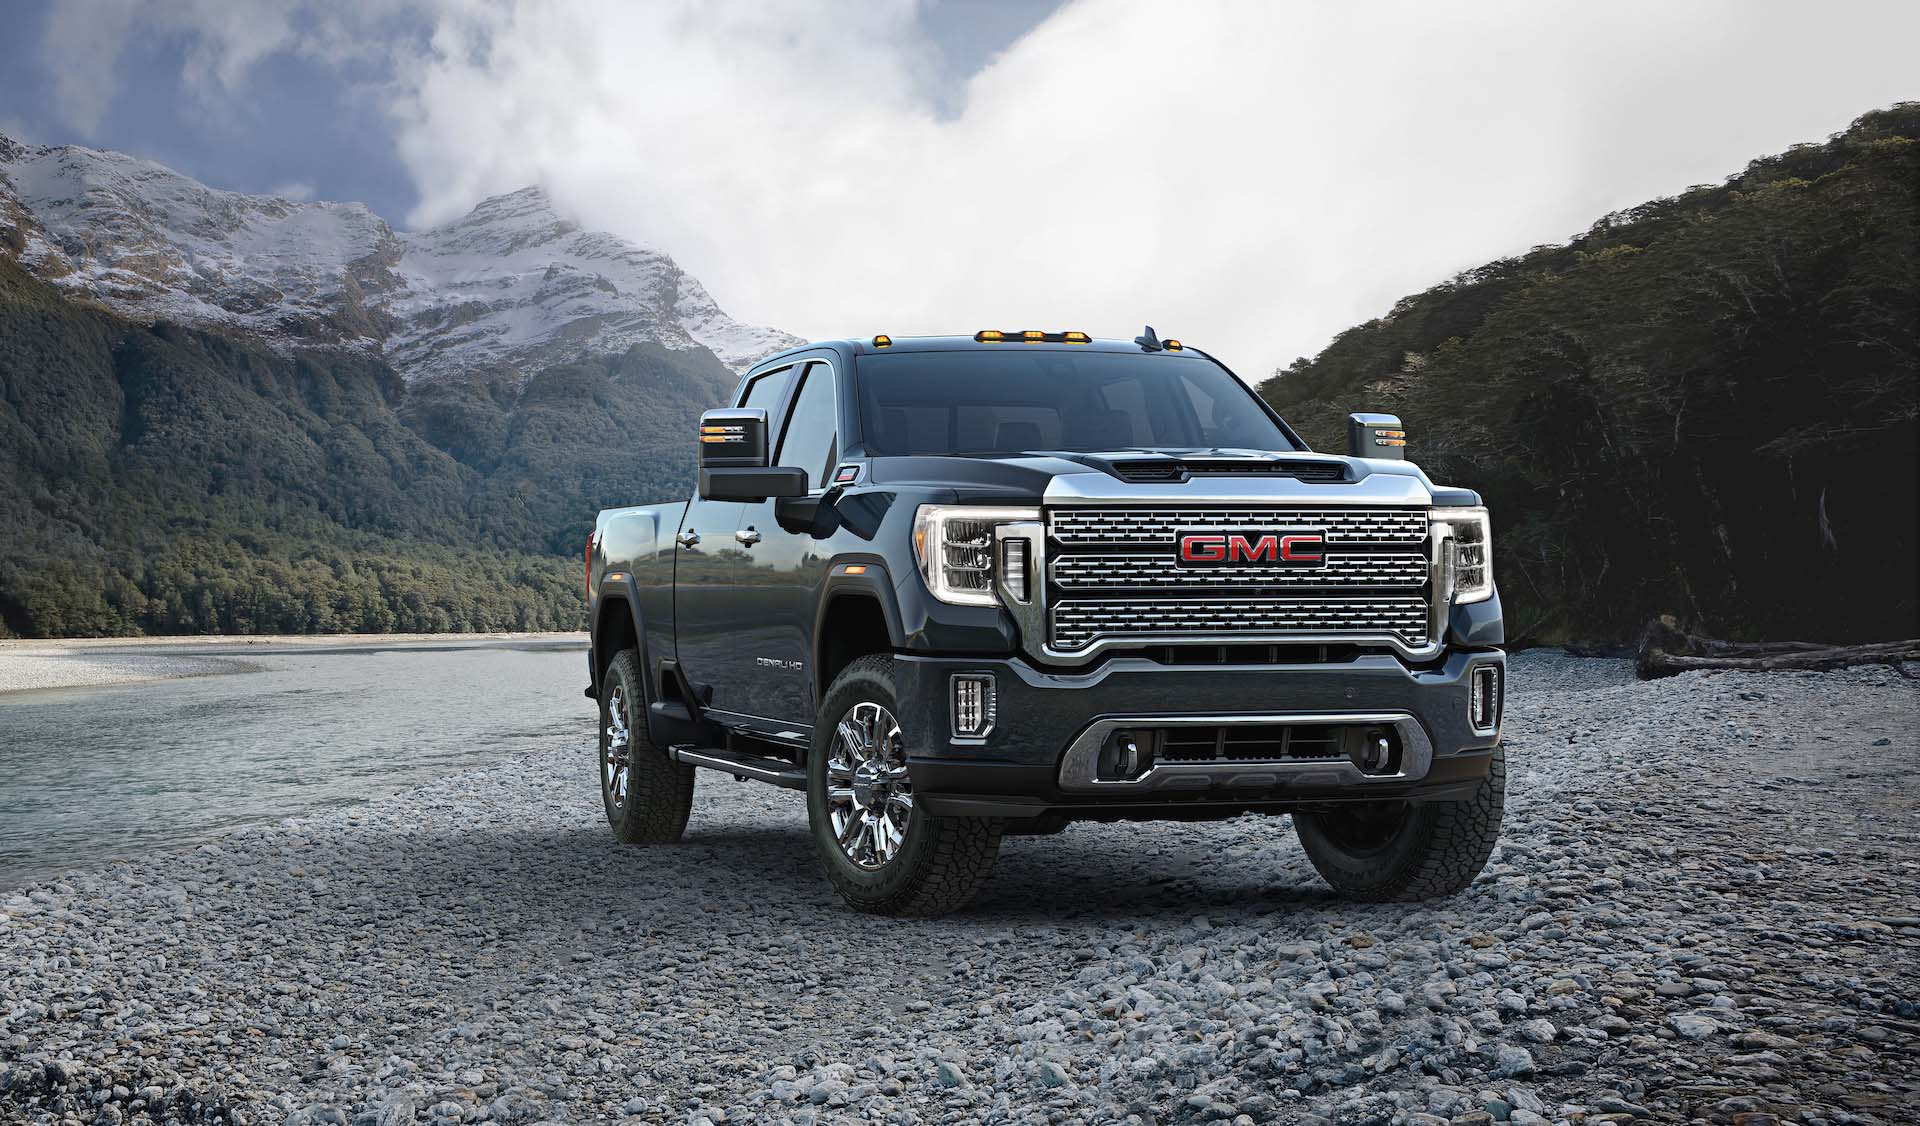 2020 Gmc Sierra Hd Hauls In Lower Starting Price Than Previous